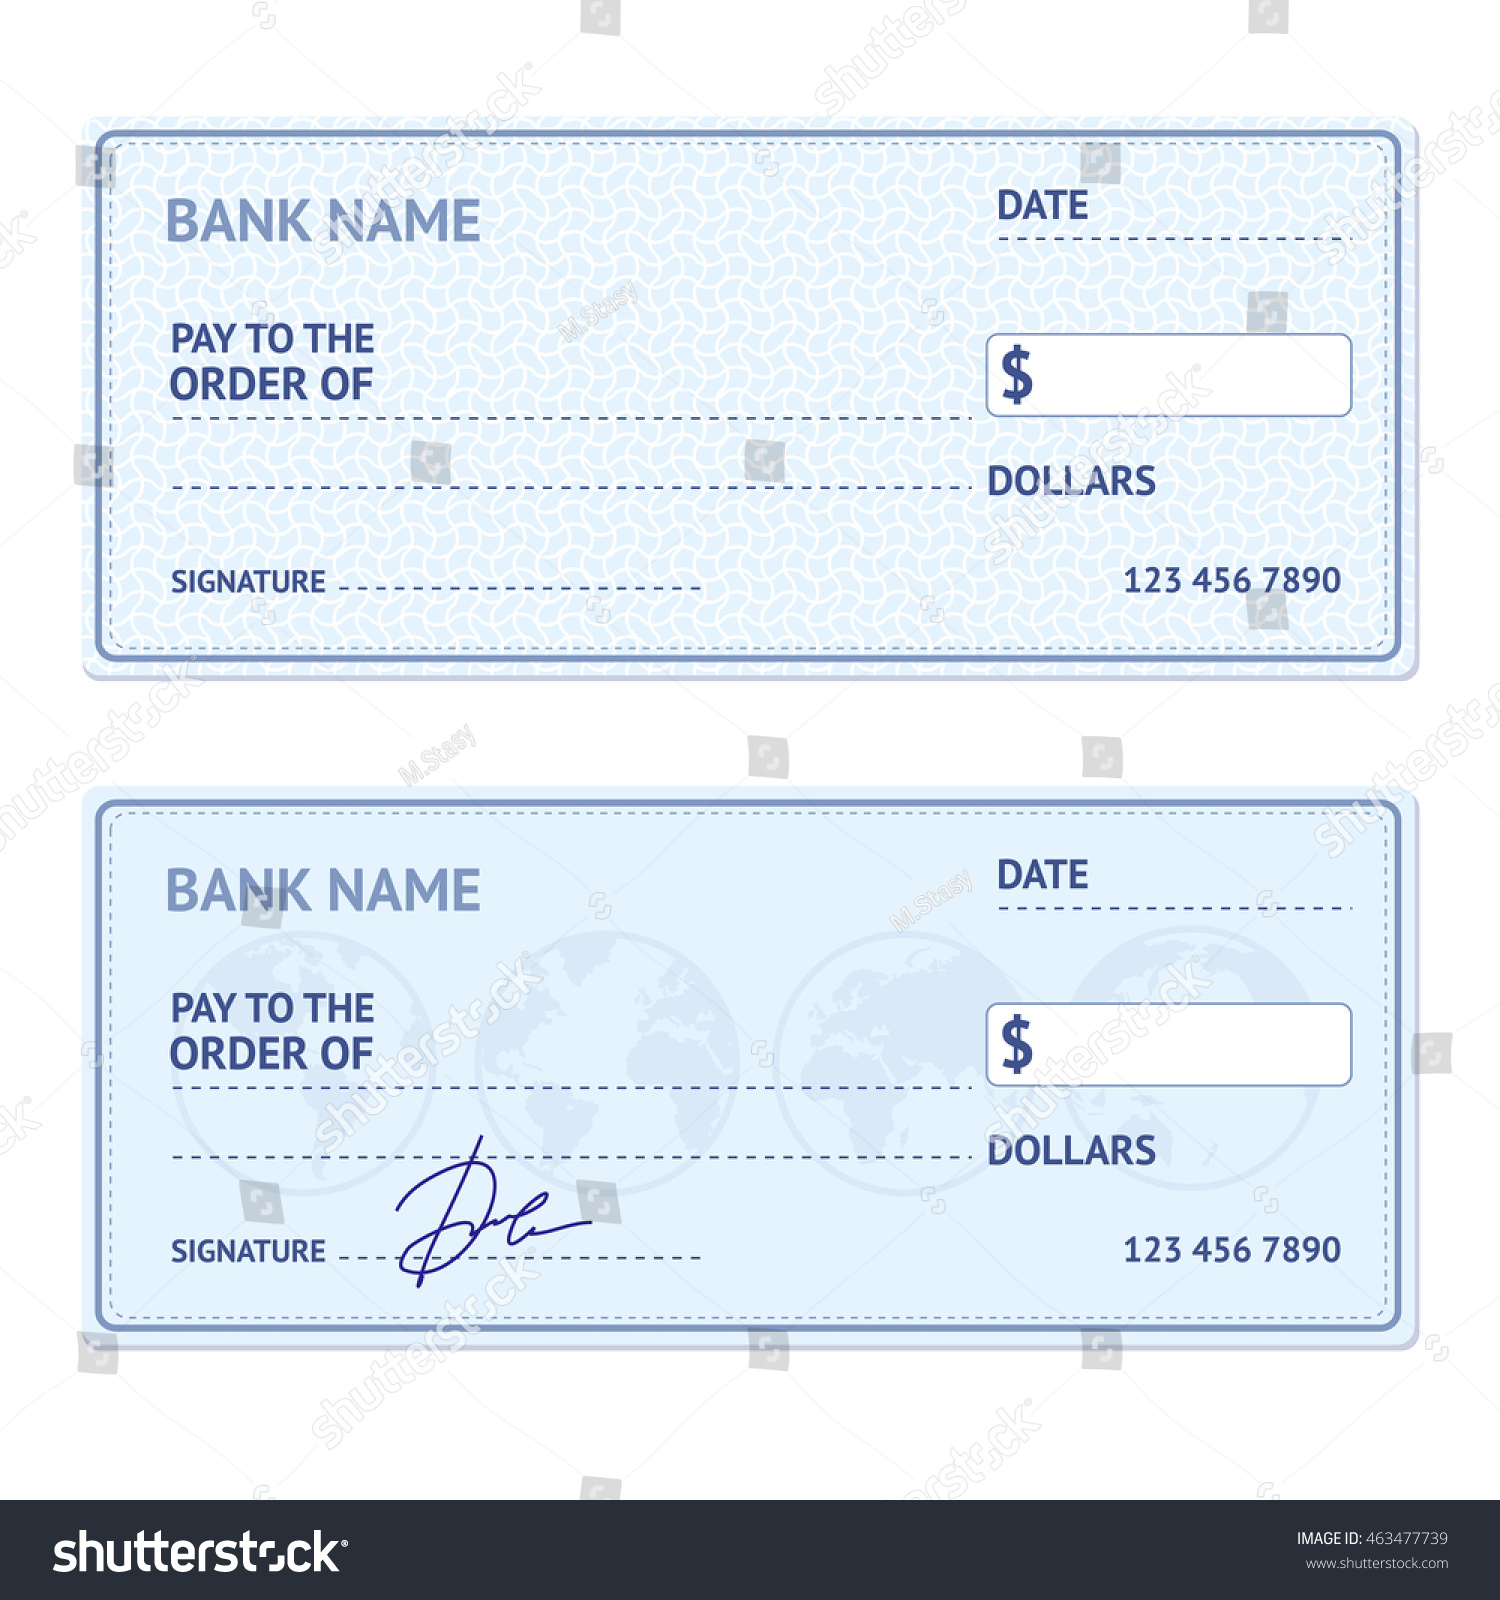 Bank check template set modern design stock illustration 463477739 bank check template set with modern design isolated on white background illustration pronofoot35fo Image collections